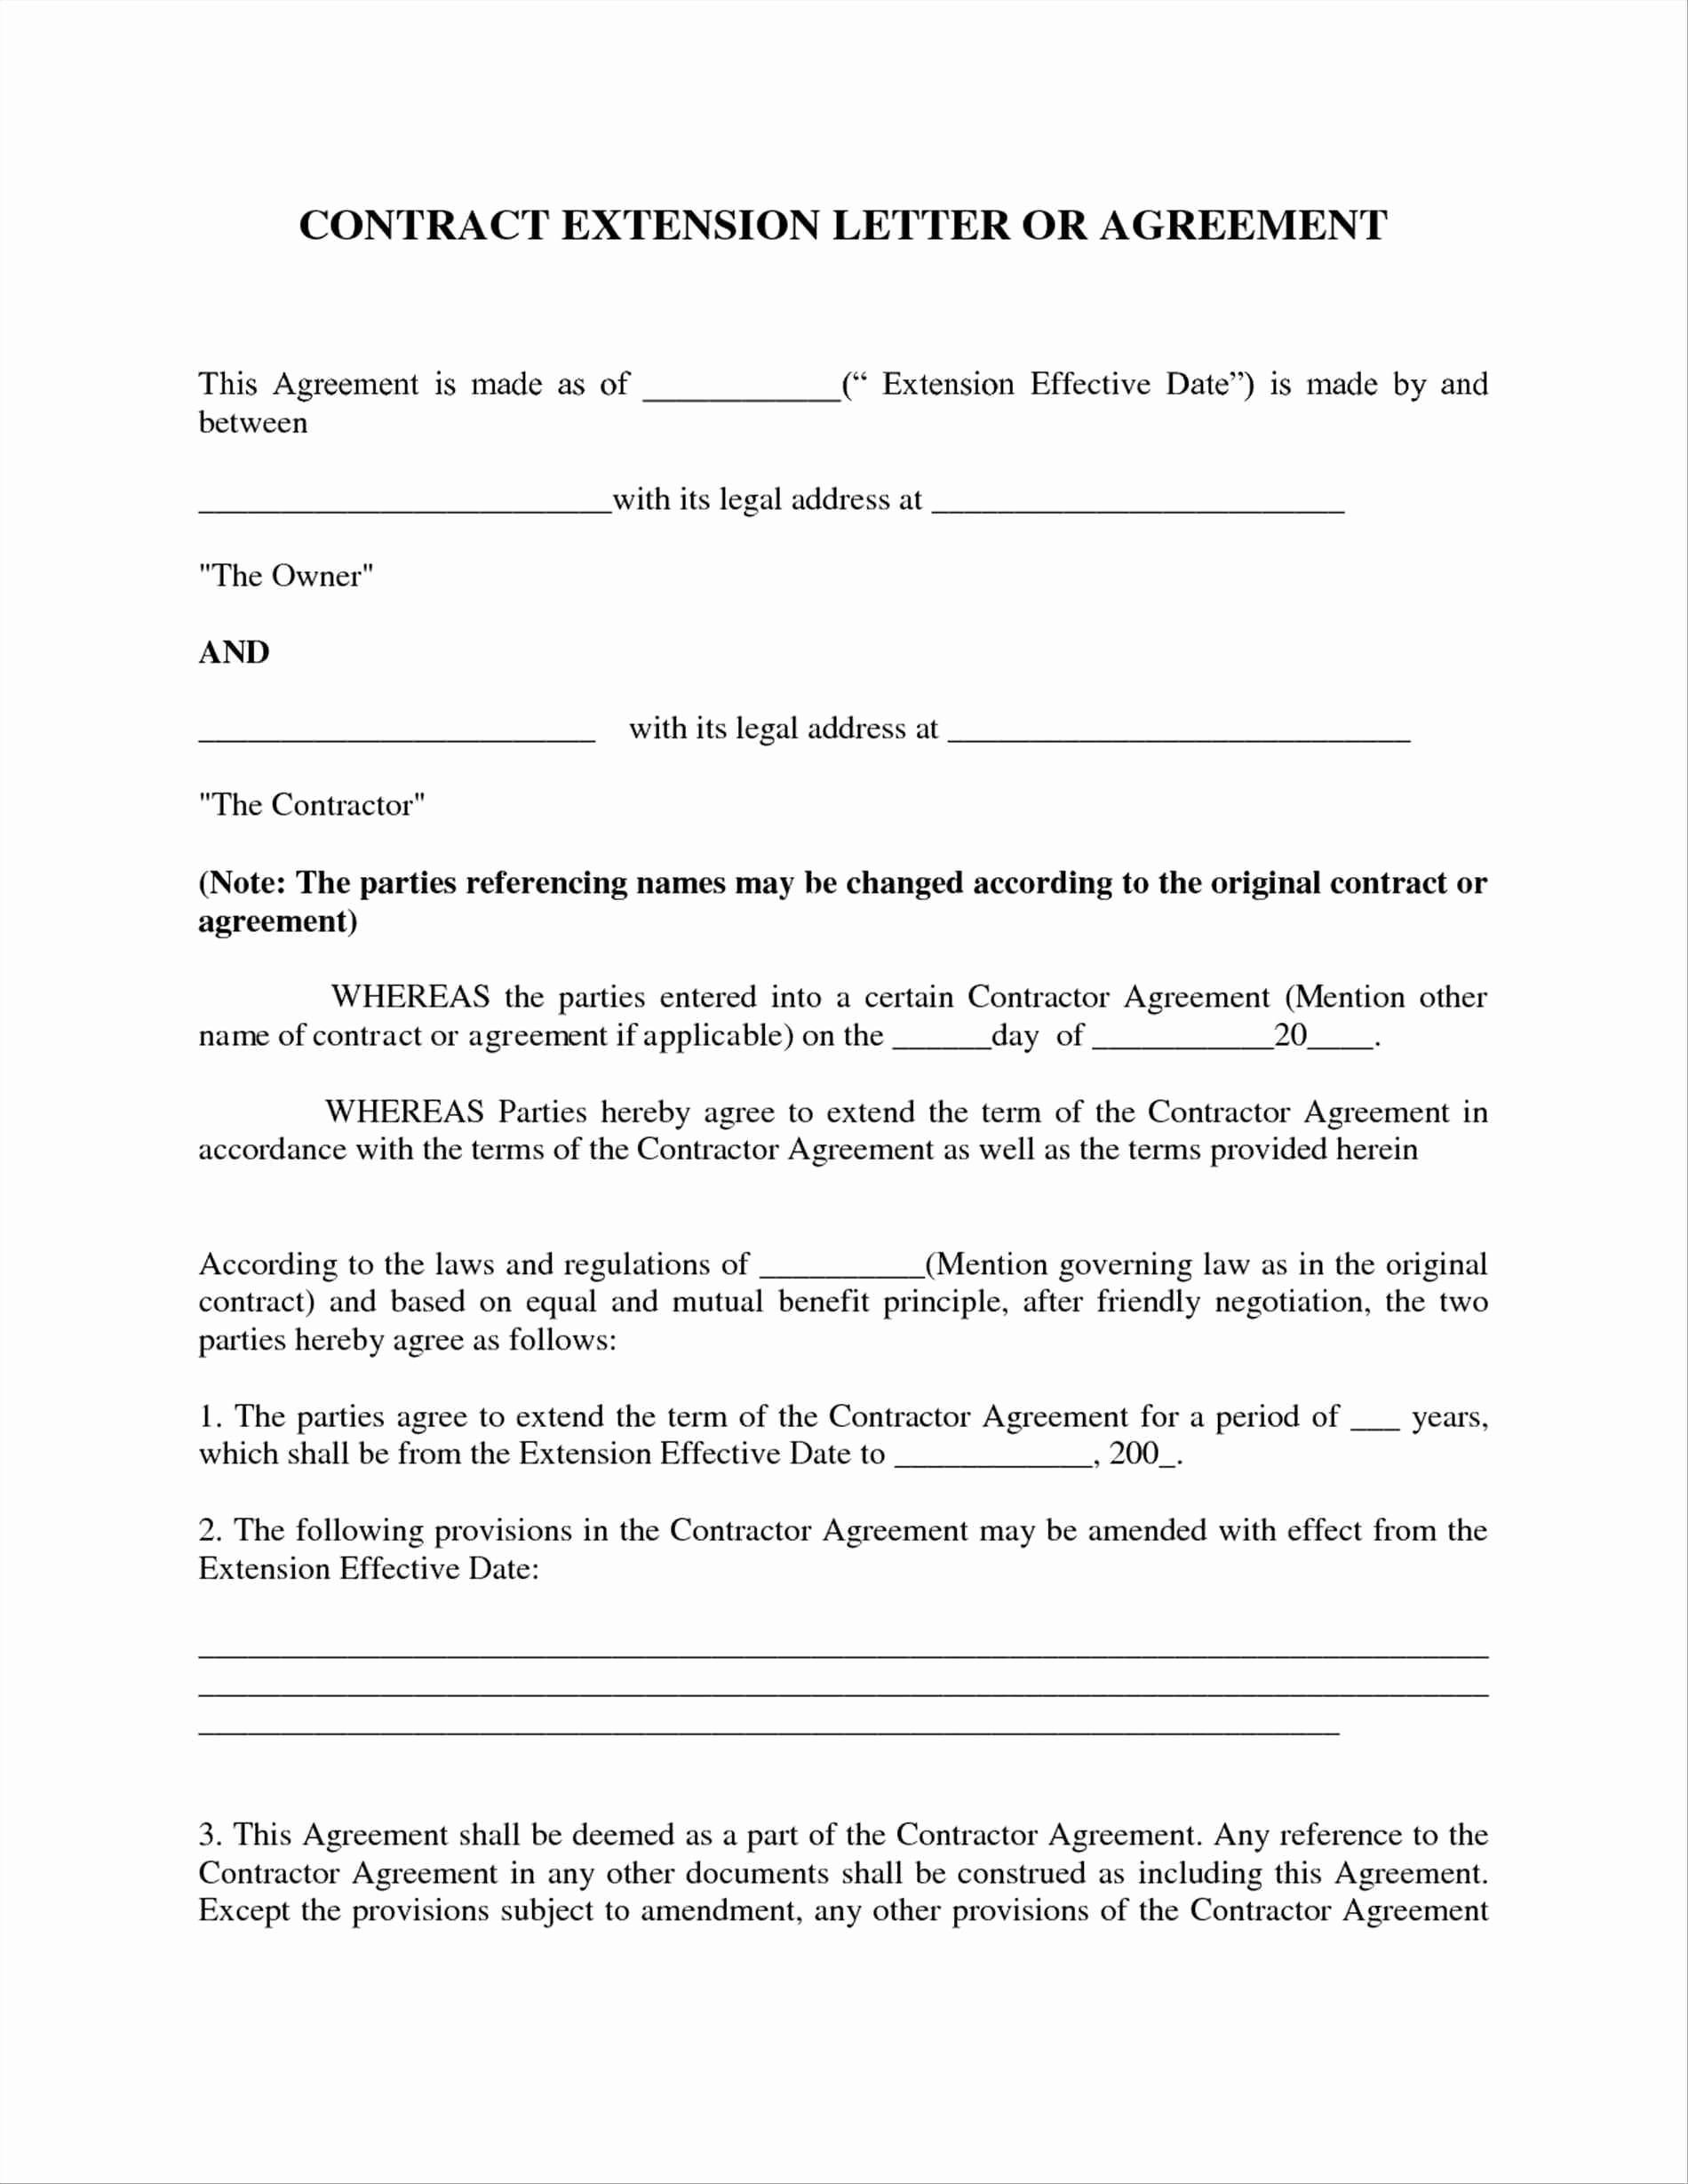 Agreement Letter Between Two Parties Sample 2 – cool green jobs